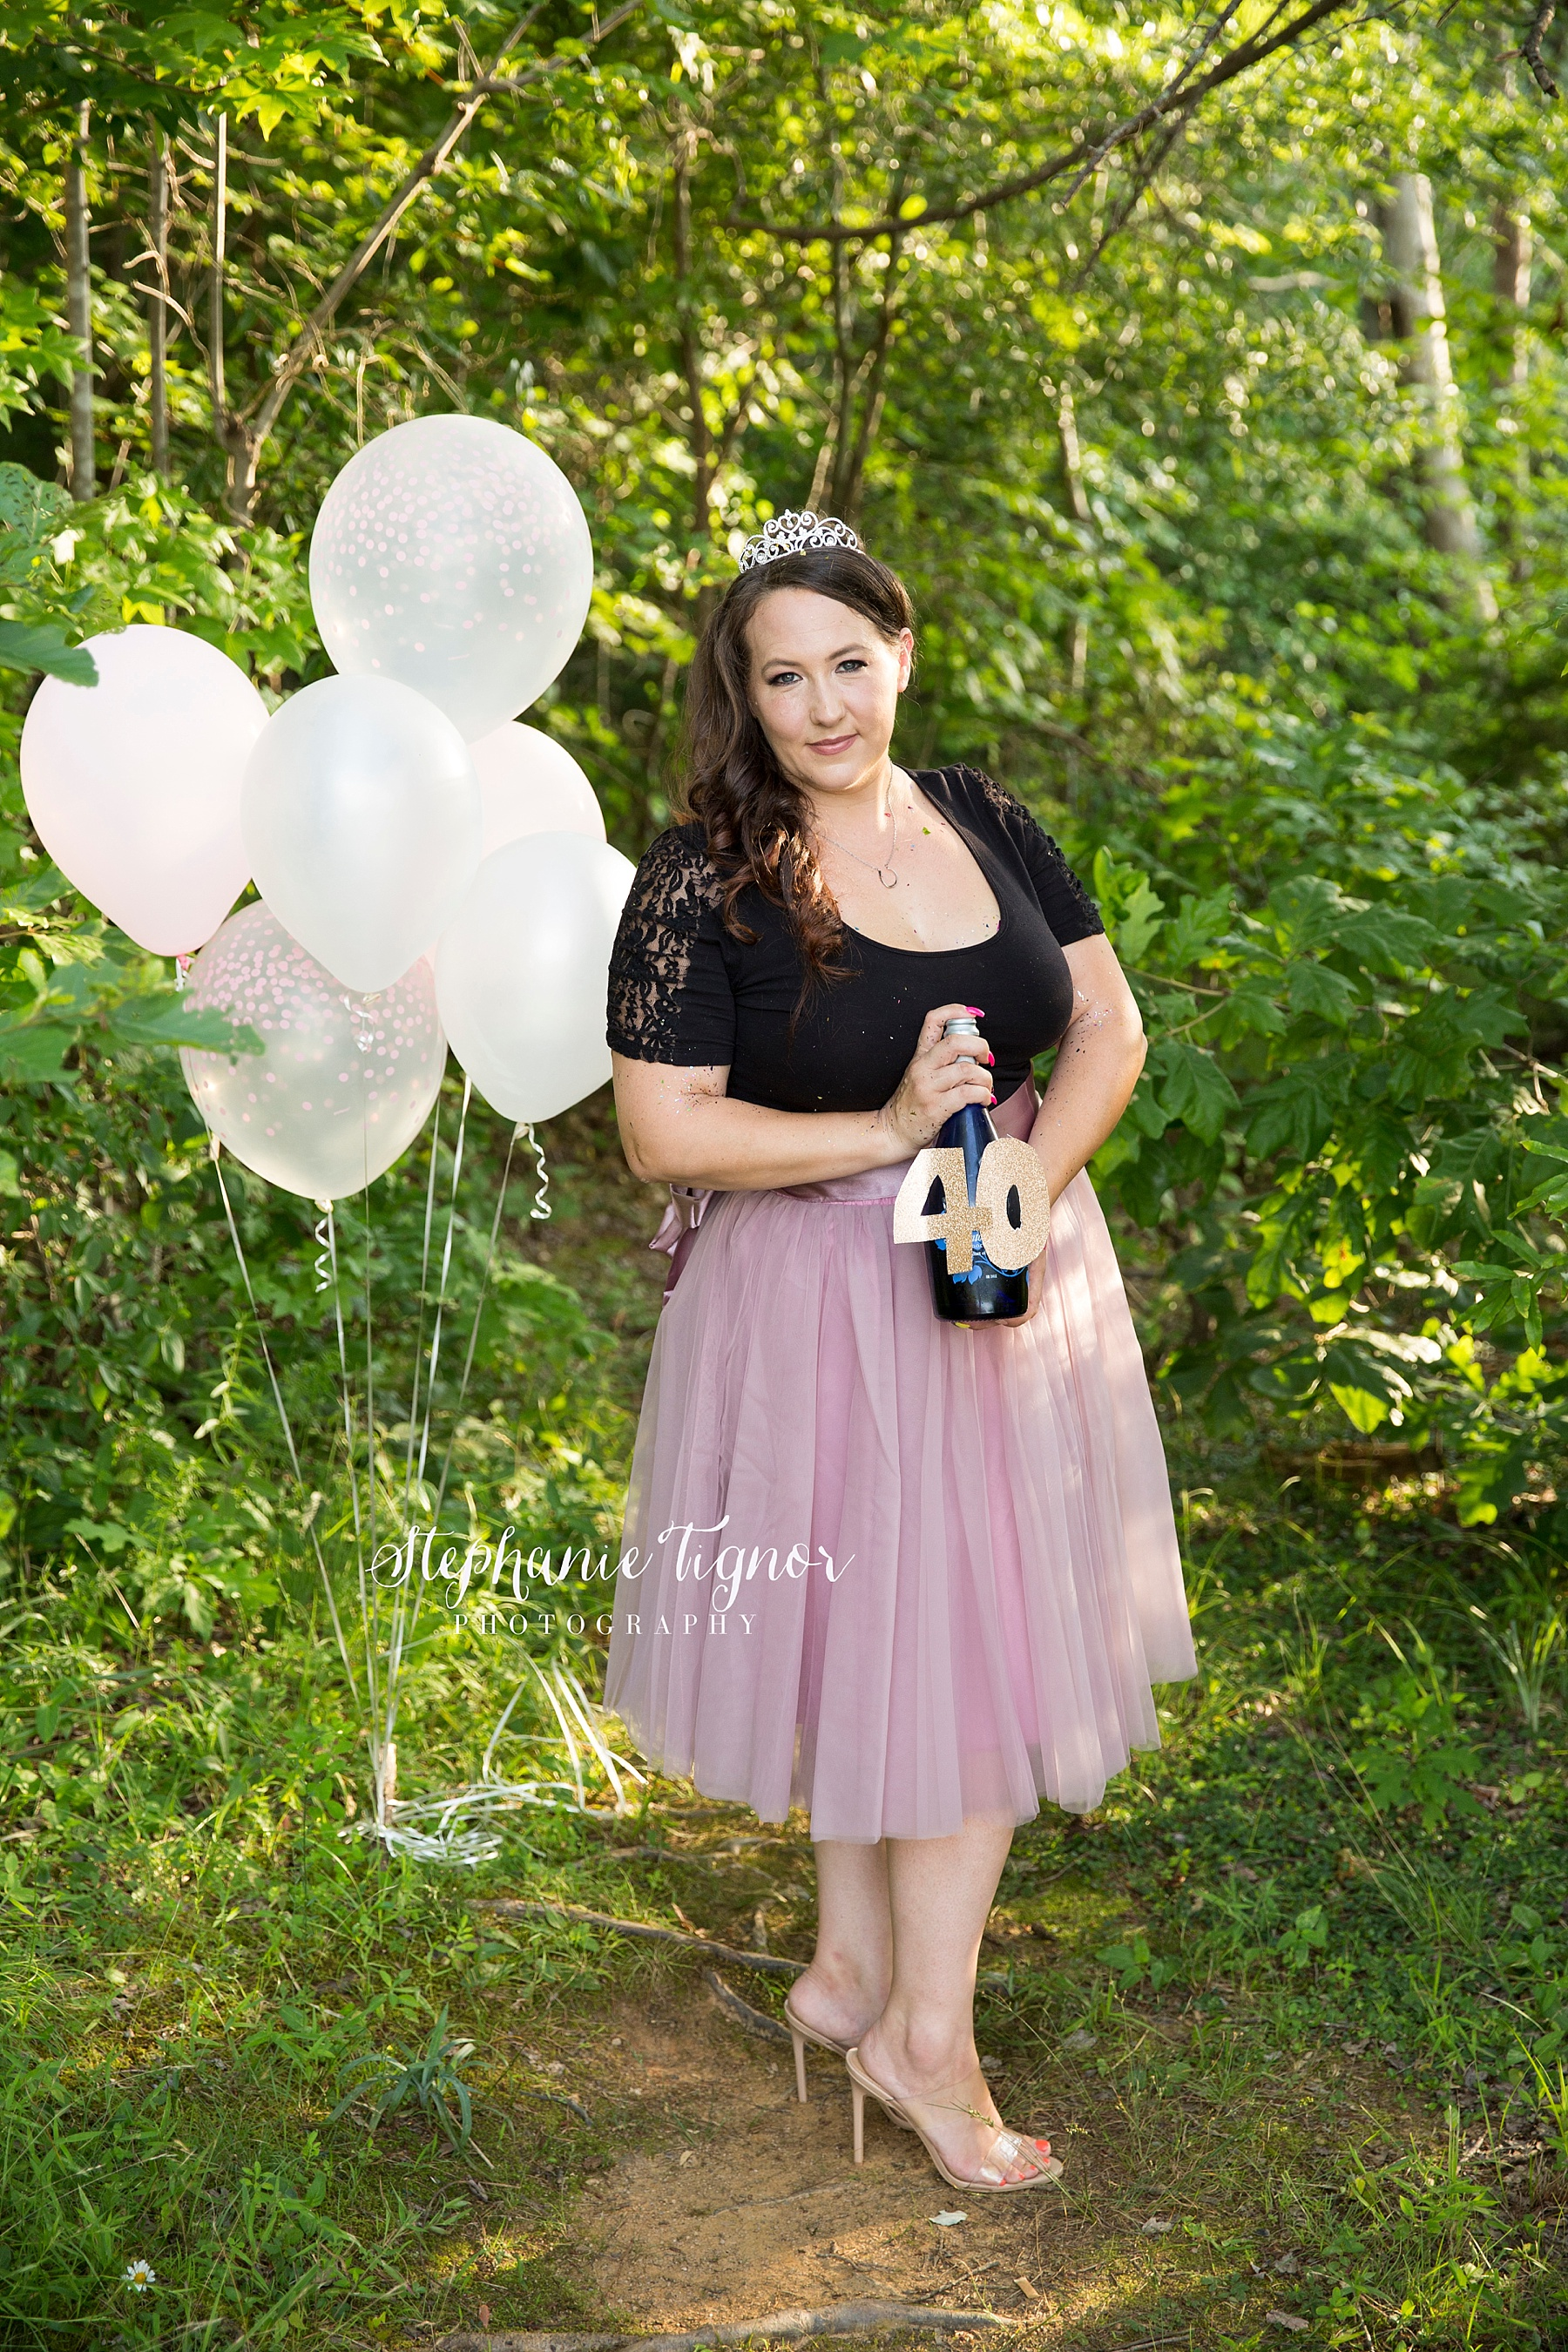 Stephanie Tignor Photography | Fredericksburg VA Adult Cake Smash Photographer | Warrenton VA Adult Cake Smash Photographer | Stafford VA Adult Cake Smash Photographer | Adult Cake Smash Photographer